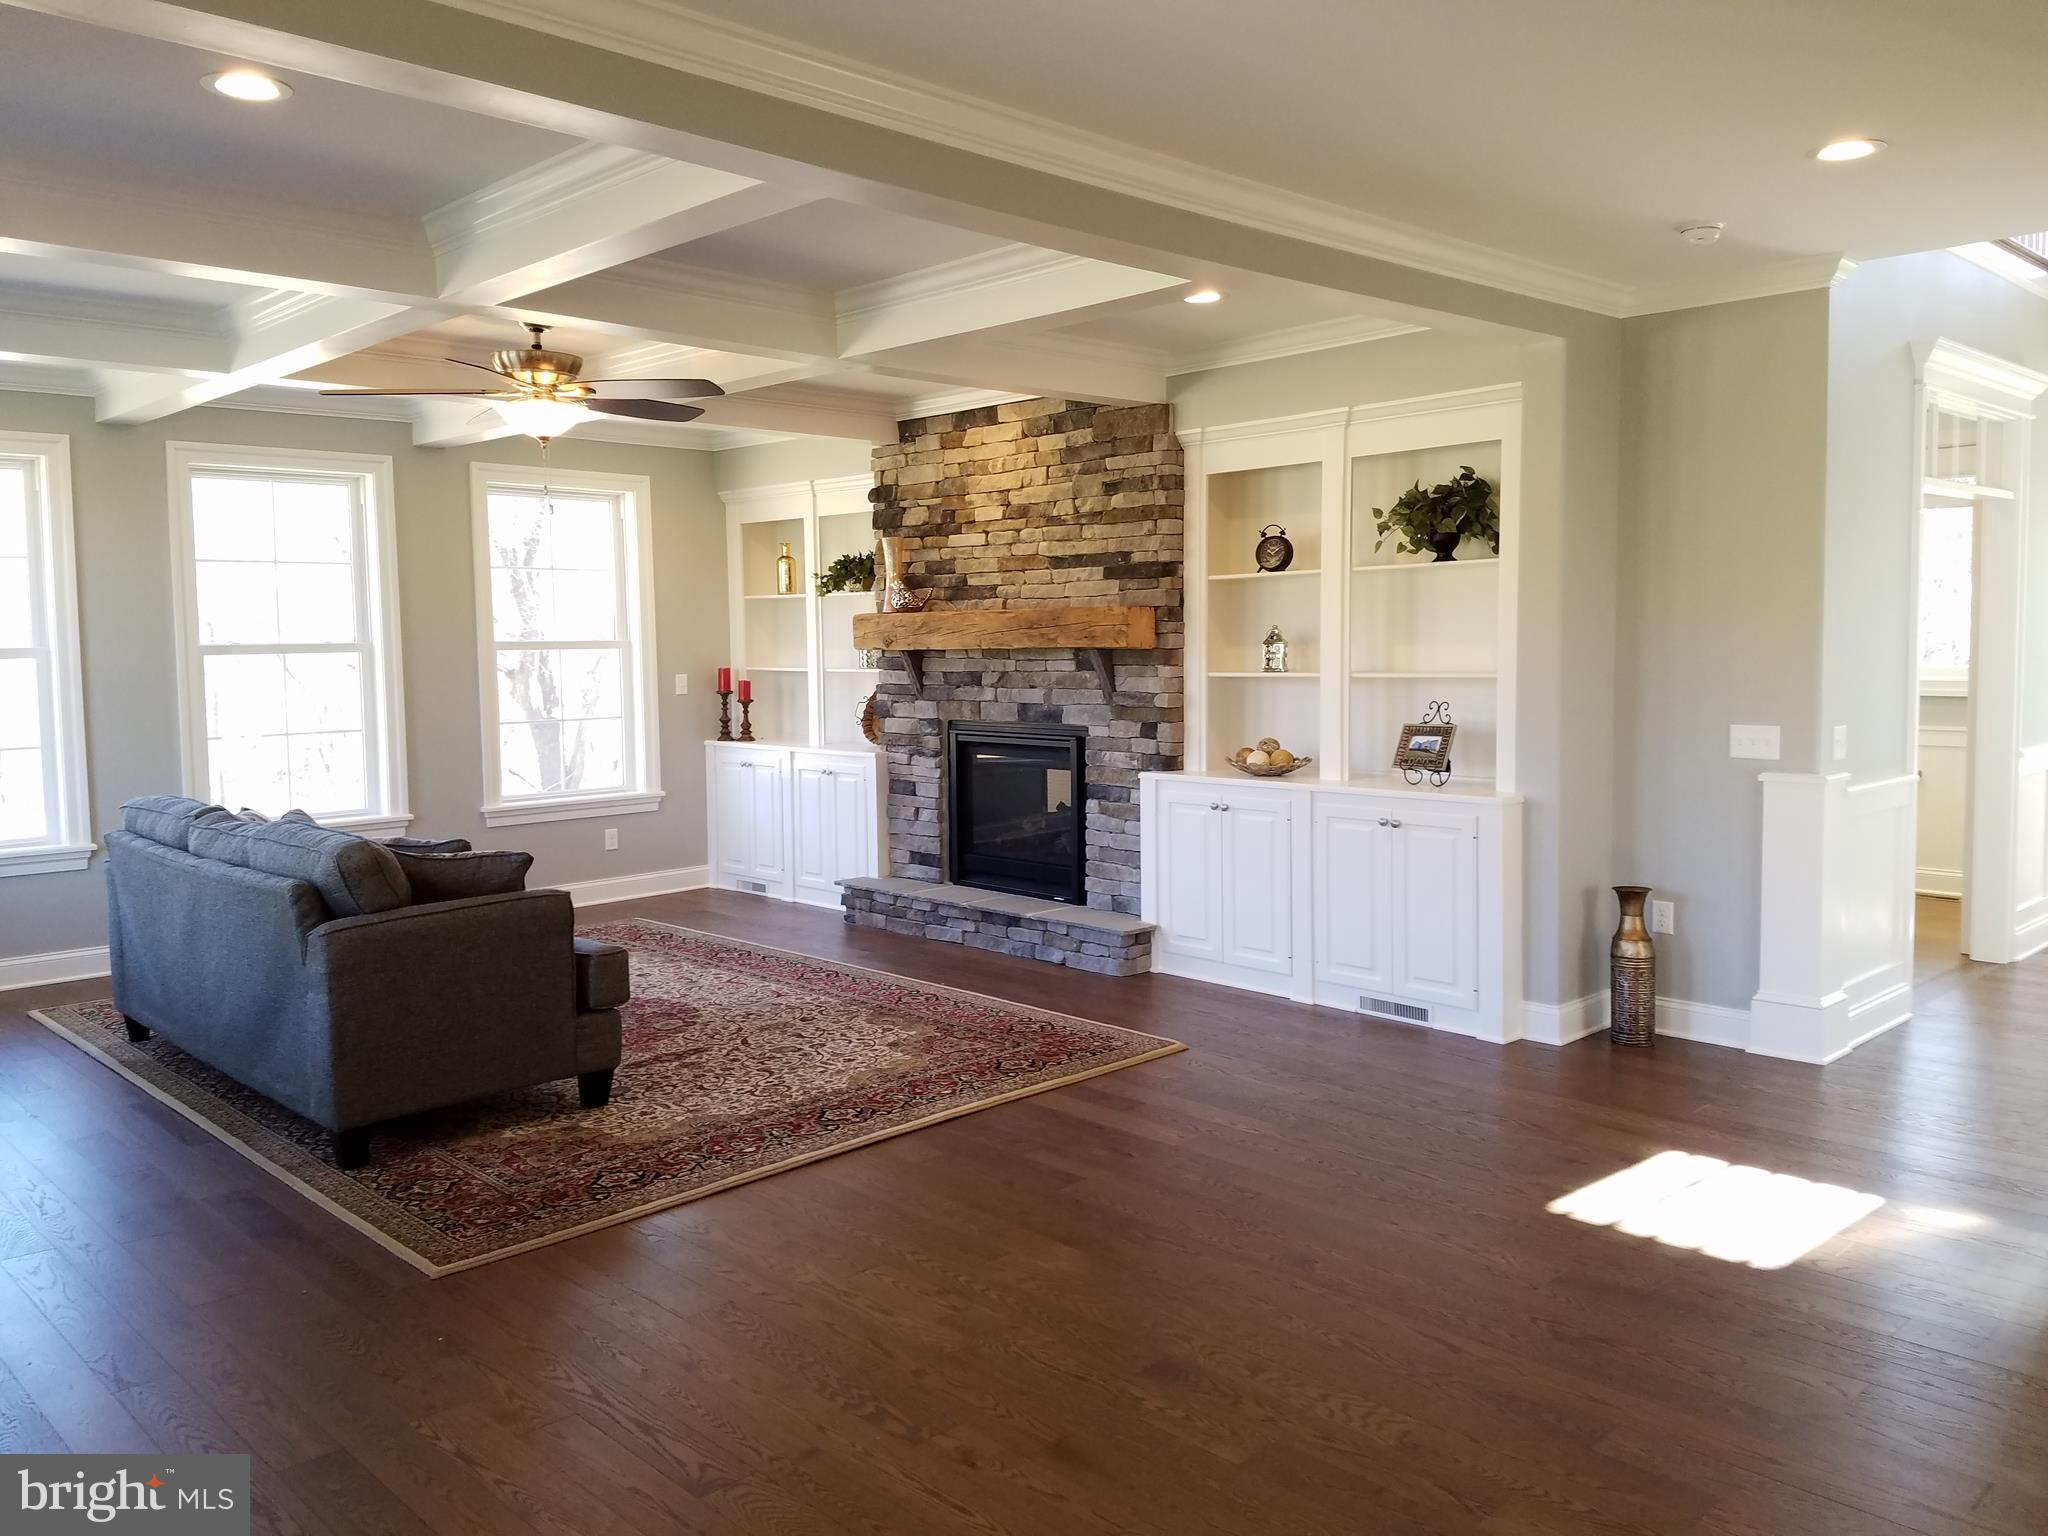 Two way fireplace and built in cabinets/shelves